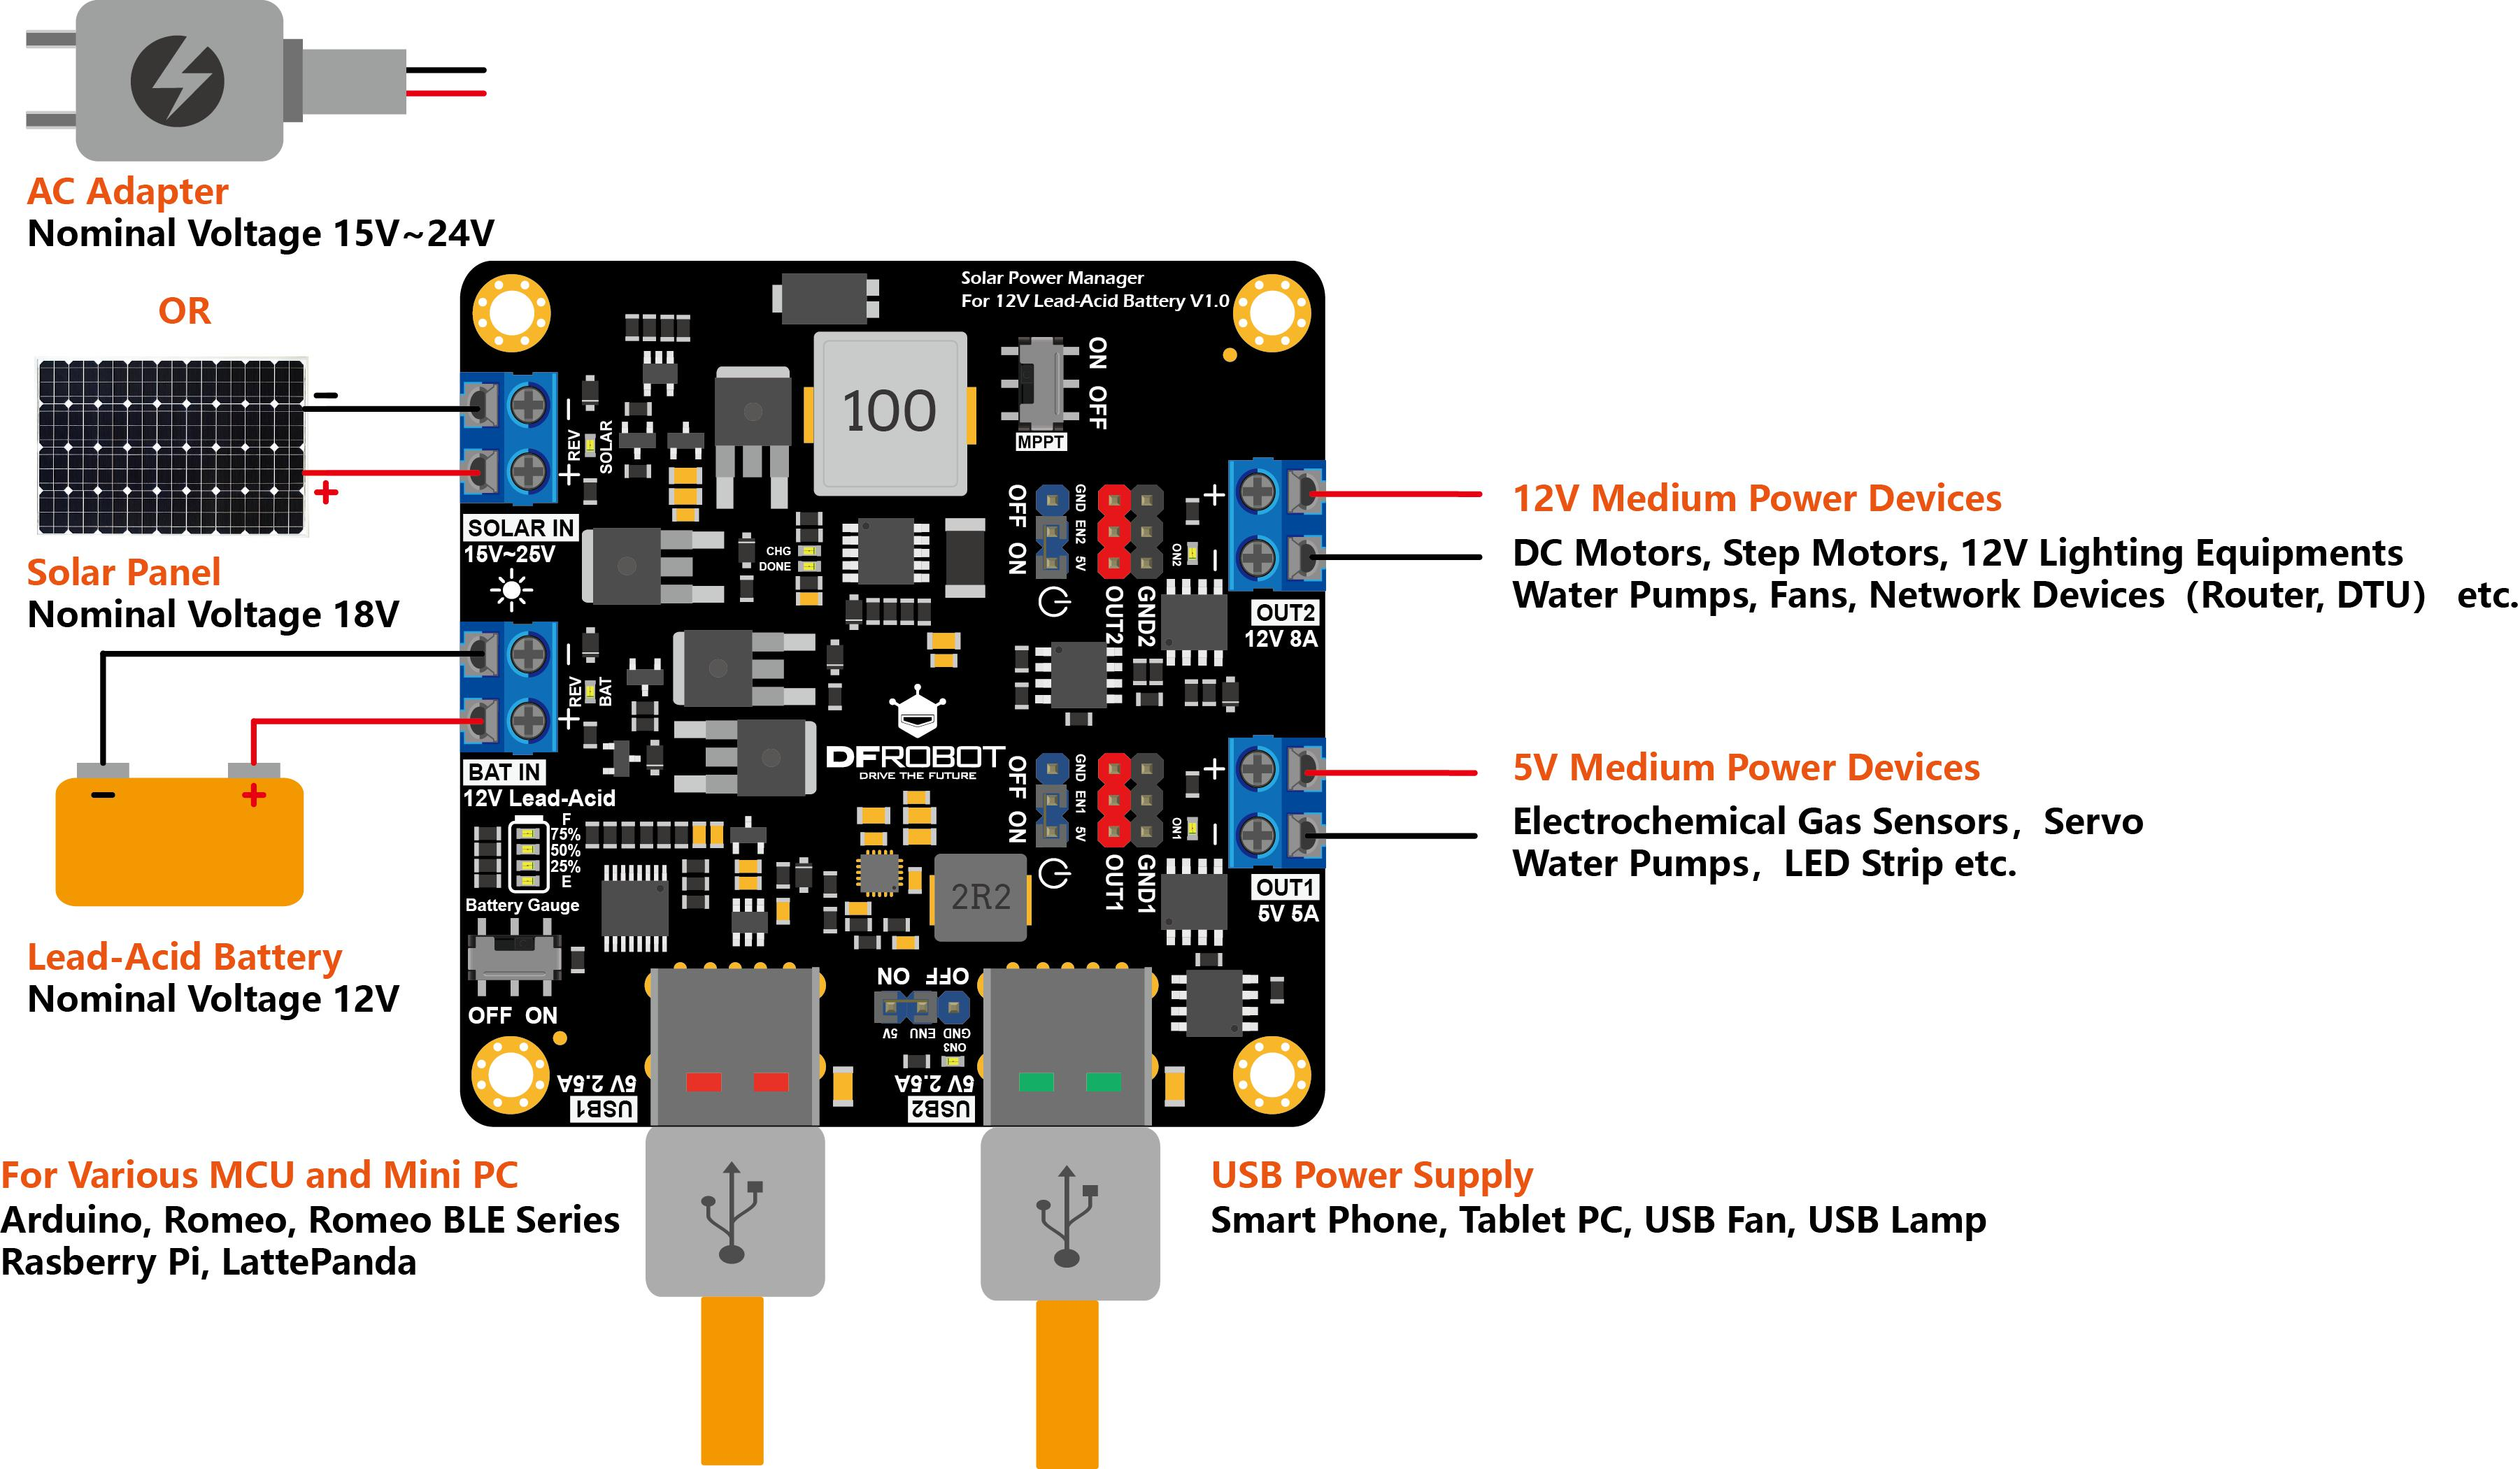 Solar Power Manager For 12V Lead-Acid Battery - DFRobot